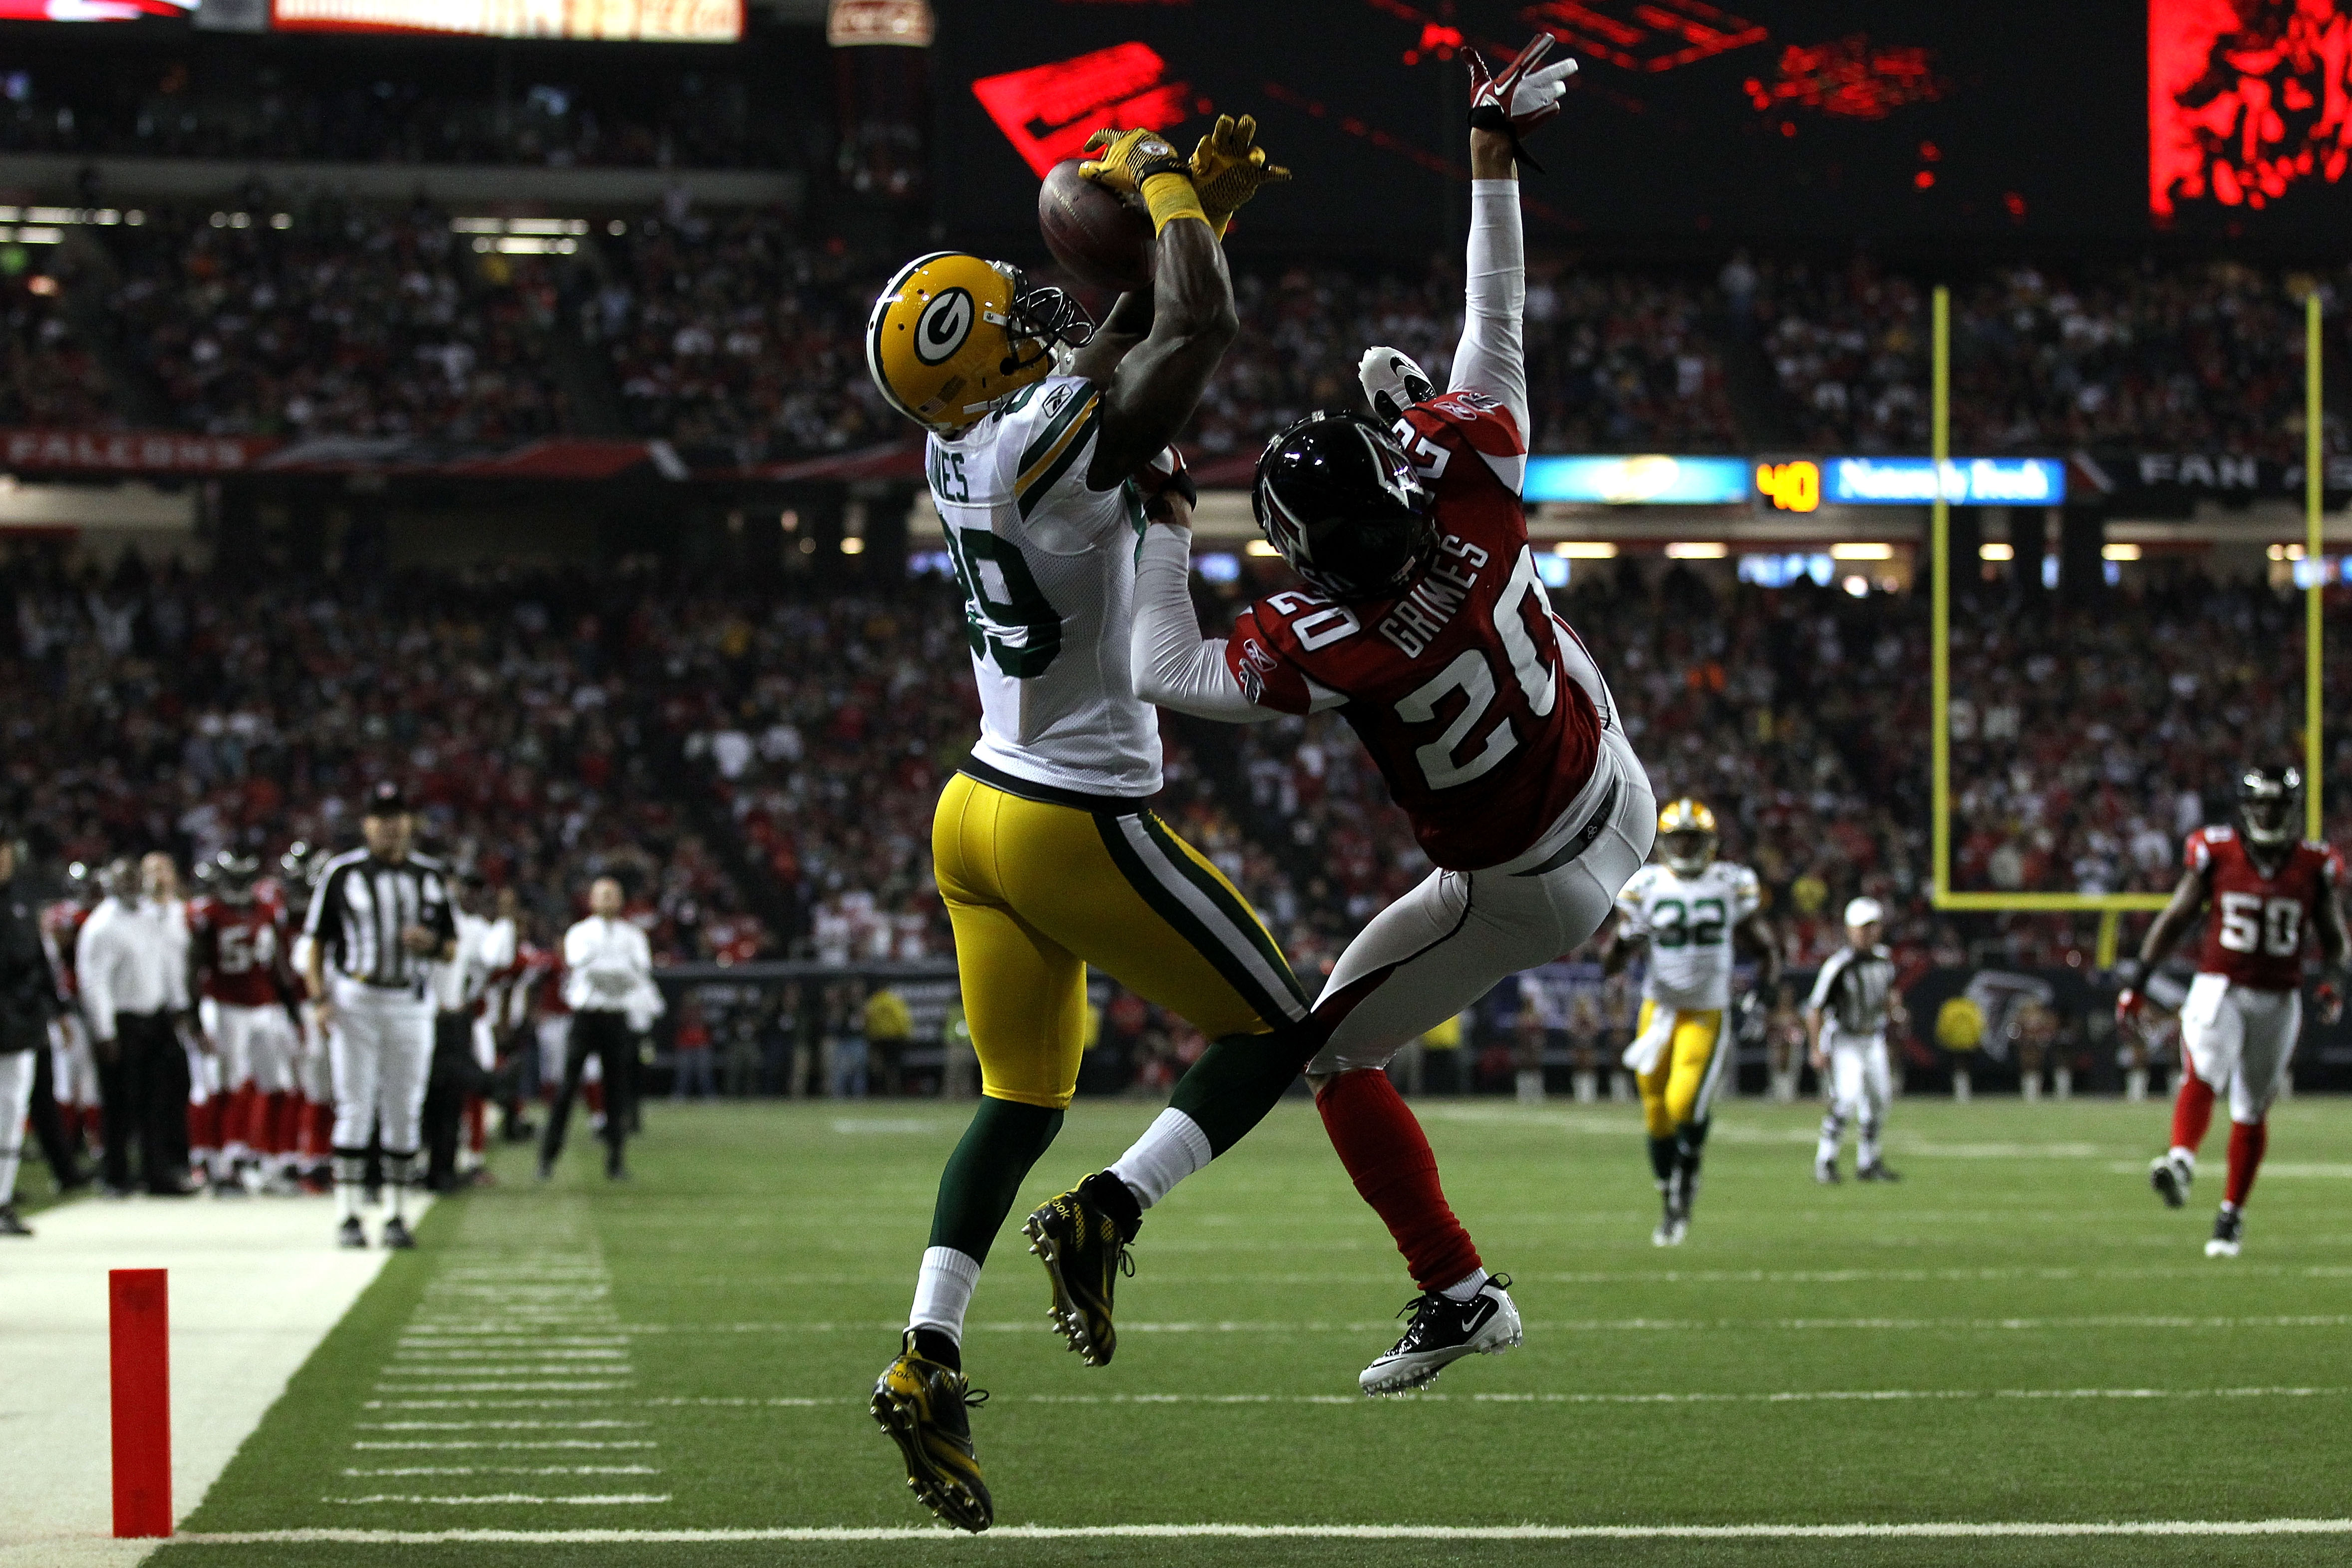 James Jones has made a name for himself and the Packers may not be able to resign him.